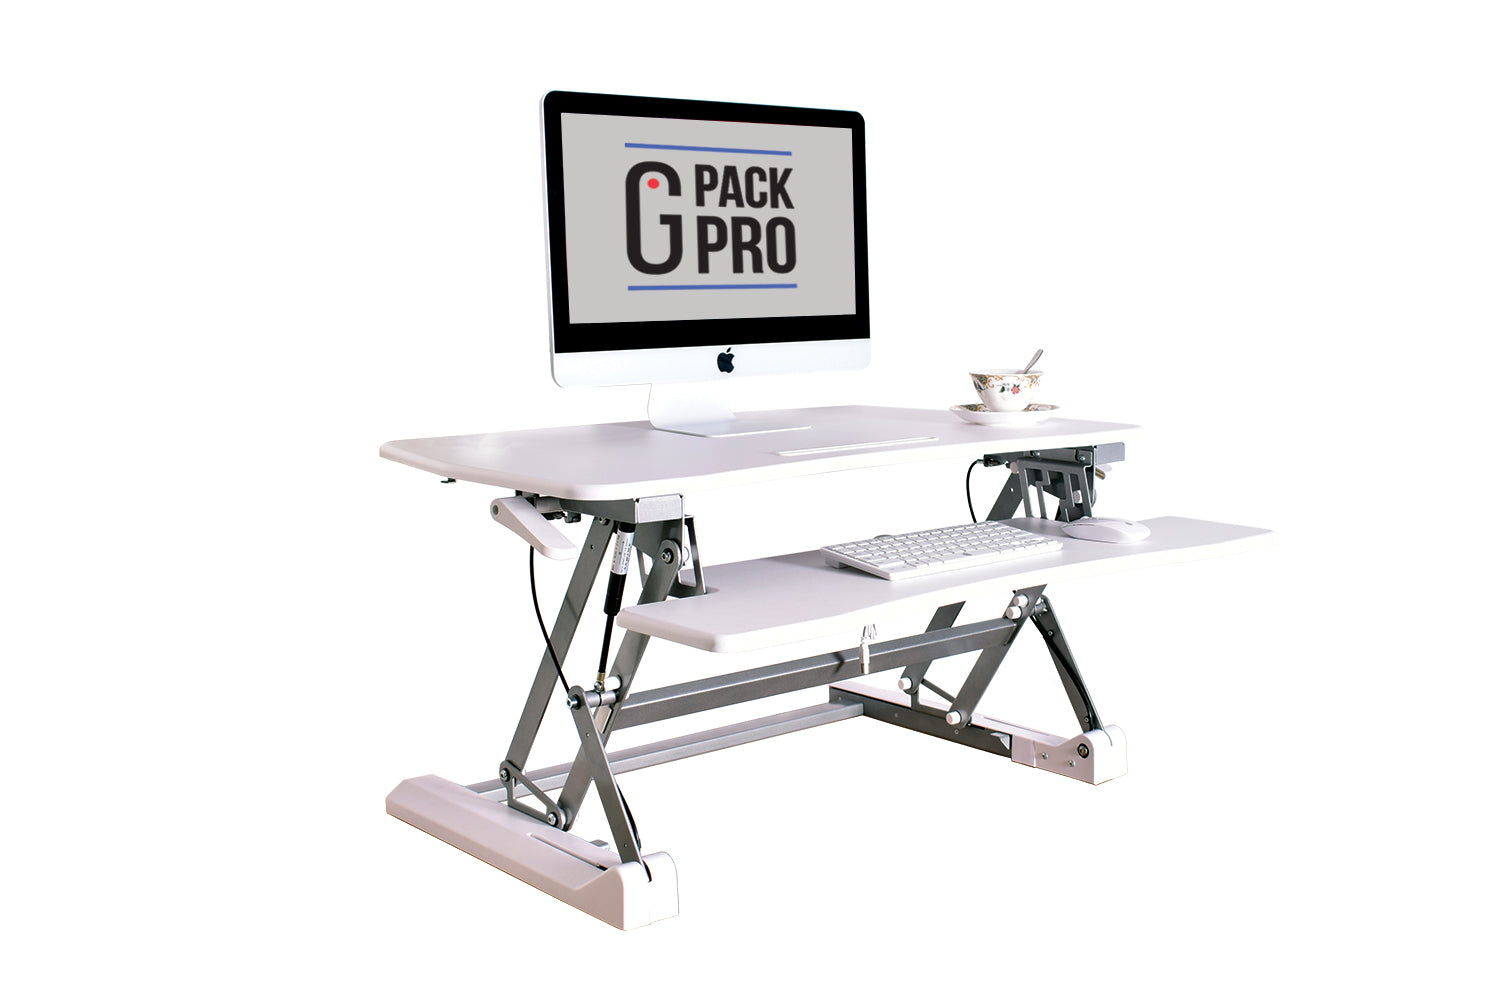 The GPack Pro Simple Standing Desk 24